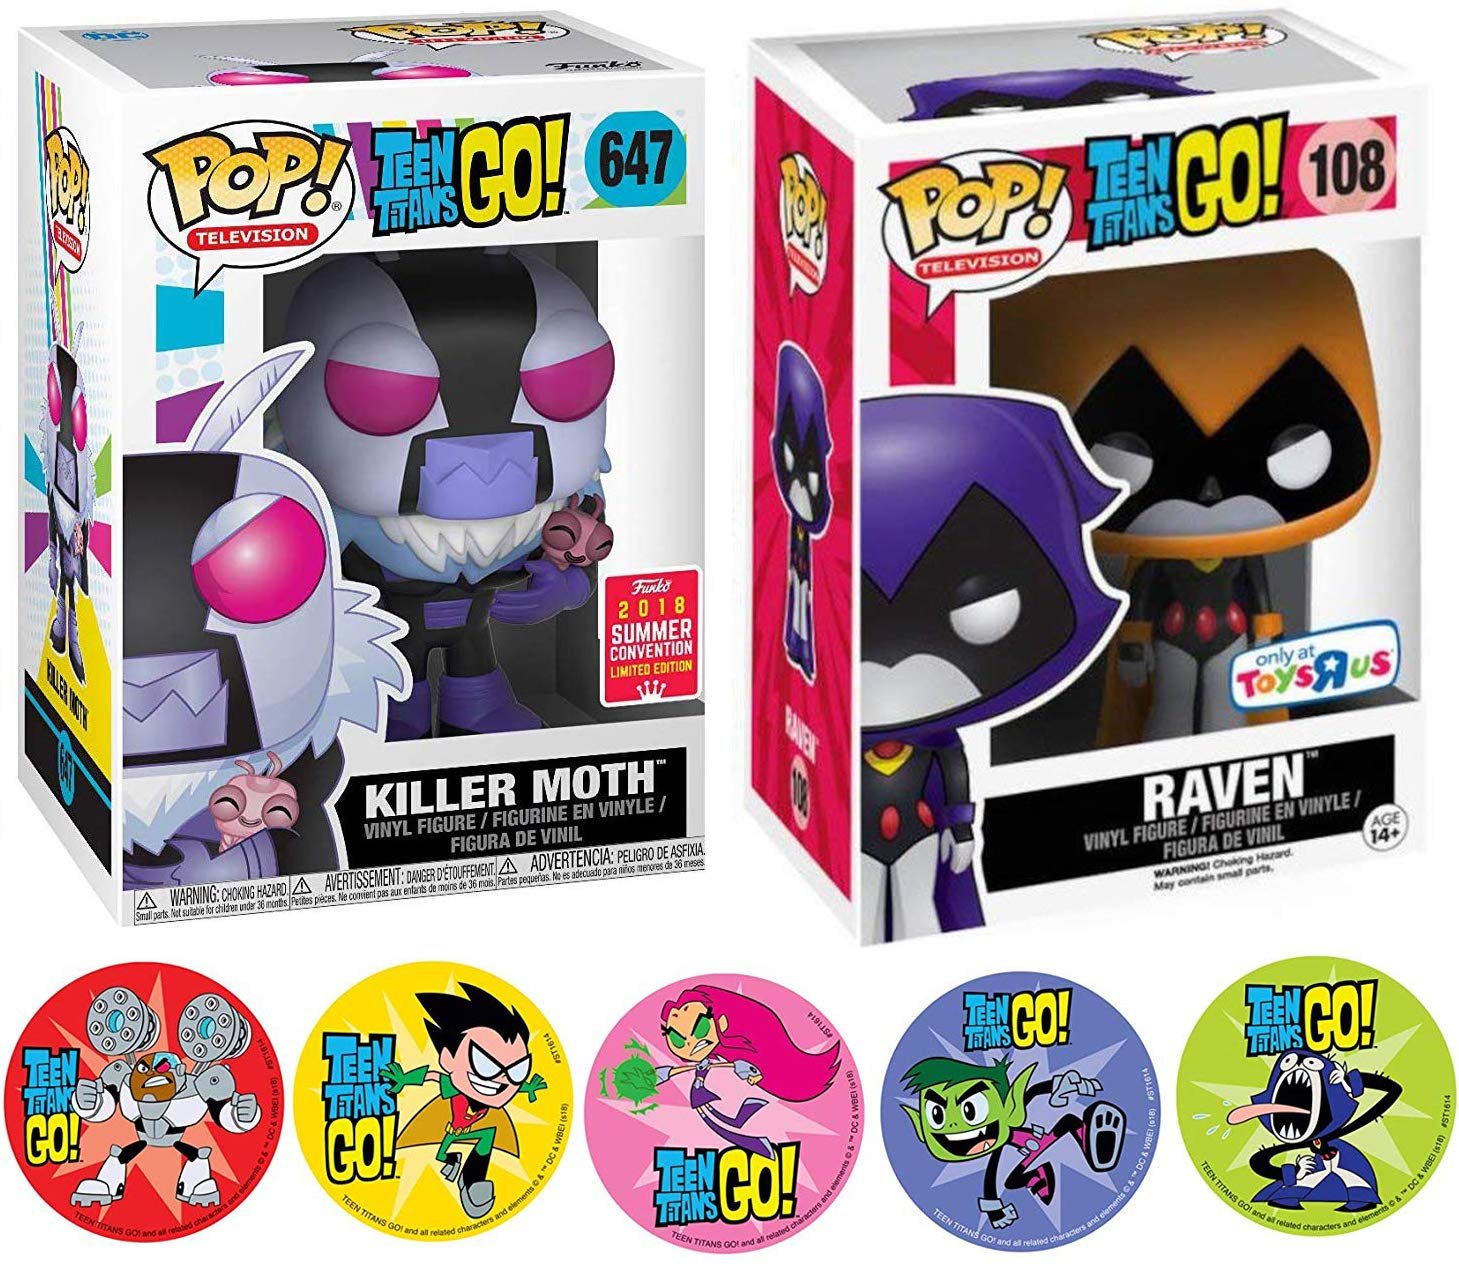 Beast Boy /& Cyborg 3 Item Bundle Action Stickers Funko Orange Raven Character Teen Titans Figure Hero #108 Bundled with Adventure Cartoon Toy Super Pop Pack Killer Moth Exclusive Raven Starfire